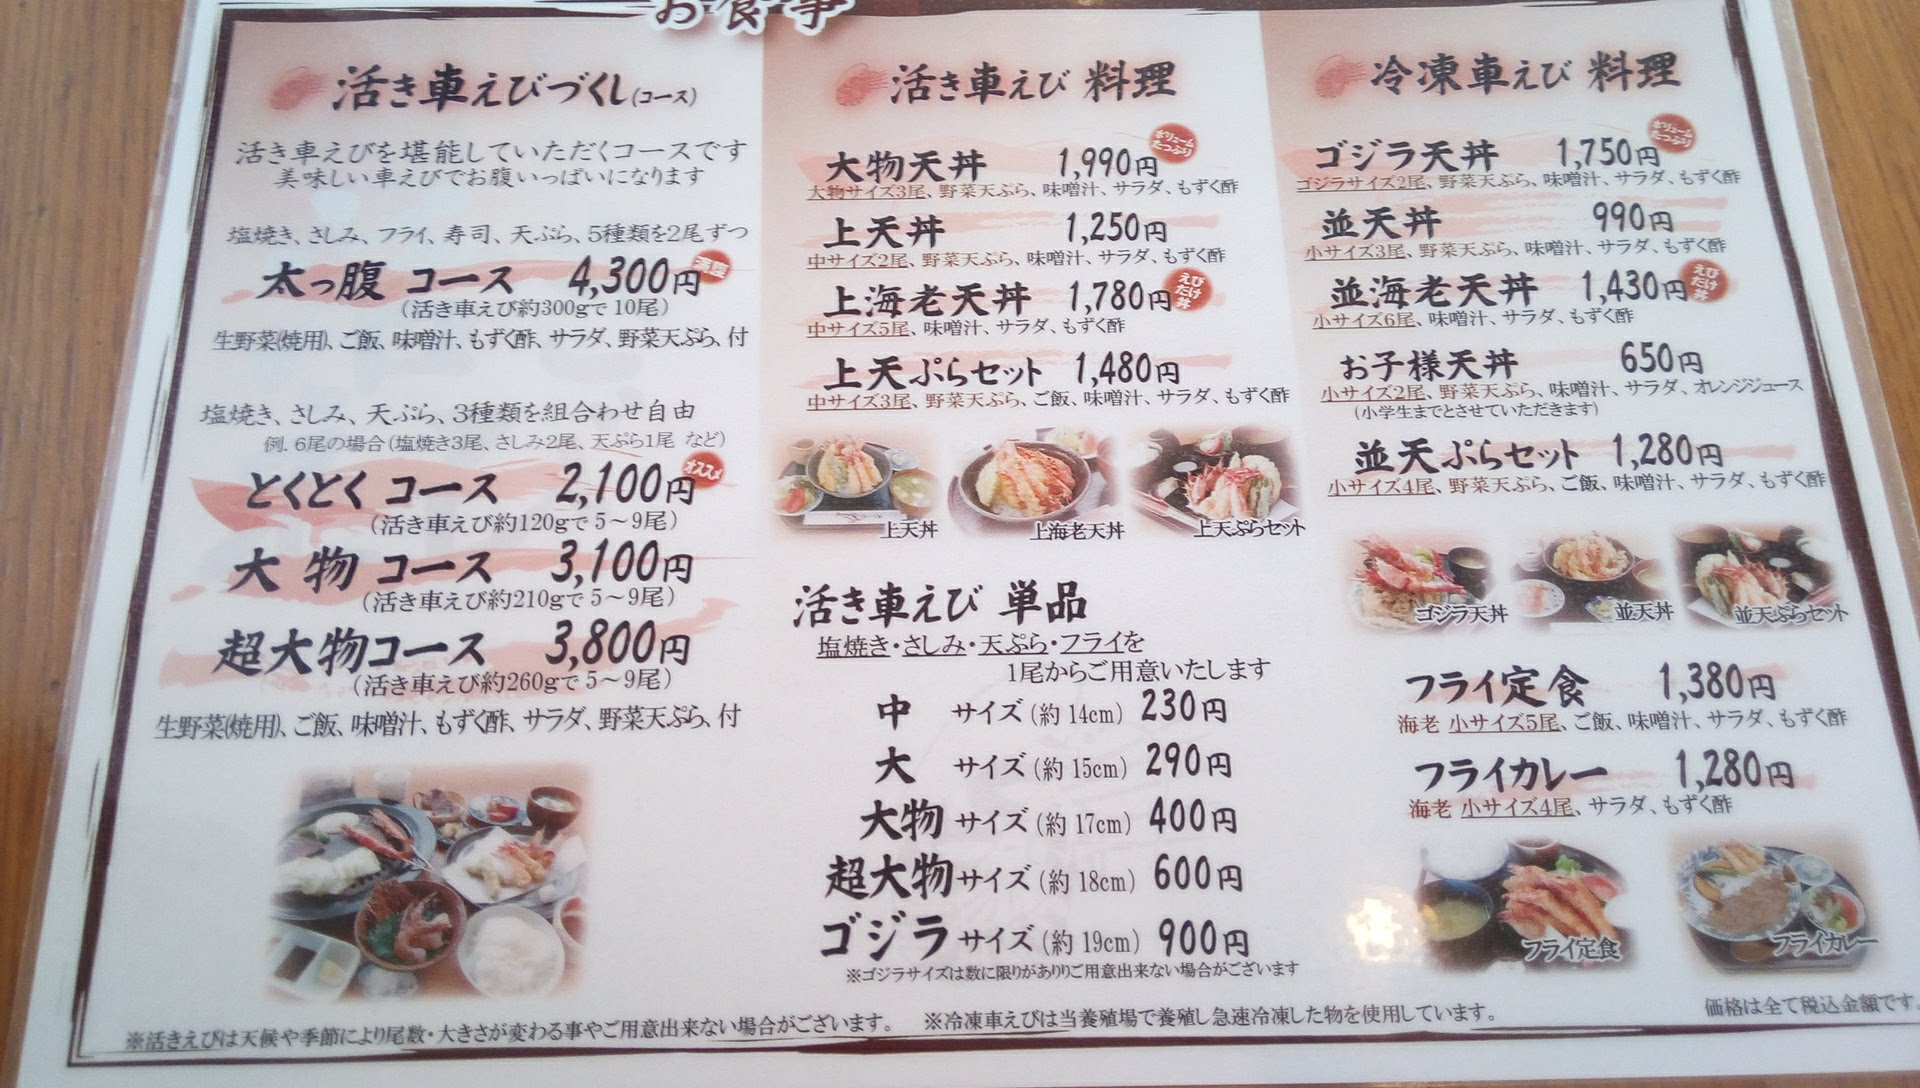 the menu of the Tamaya 1